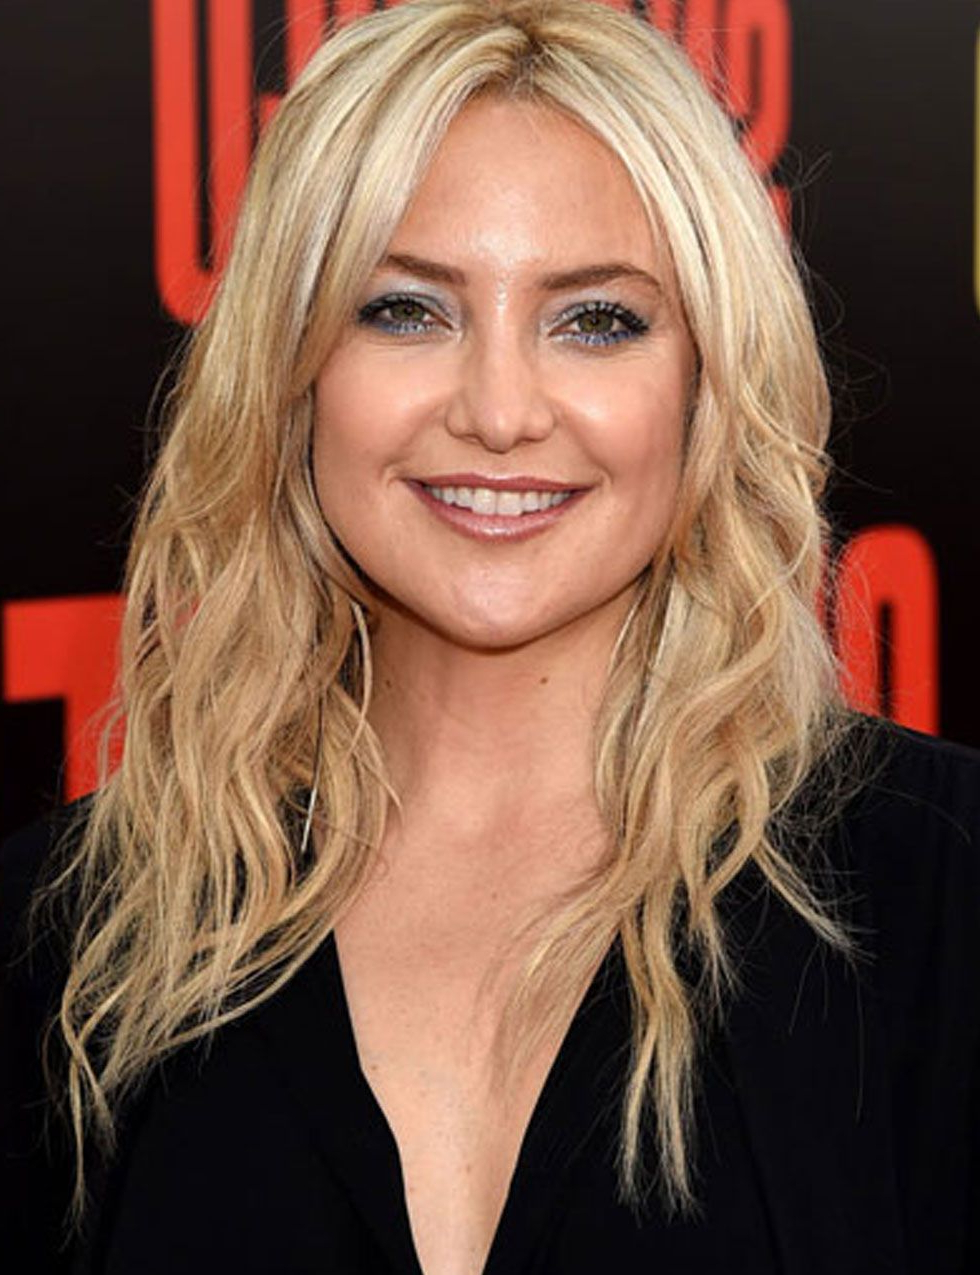 Best Hairstyles For Fine Hair – 18 Celebs With Fine Hair Inside The Finest Haircuts For Fine Hair (View 10 of 20)